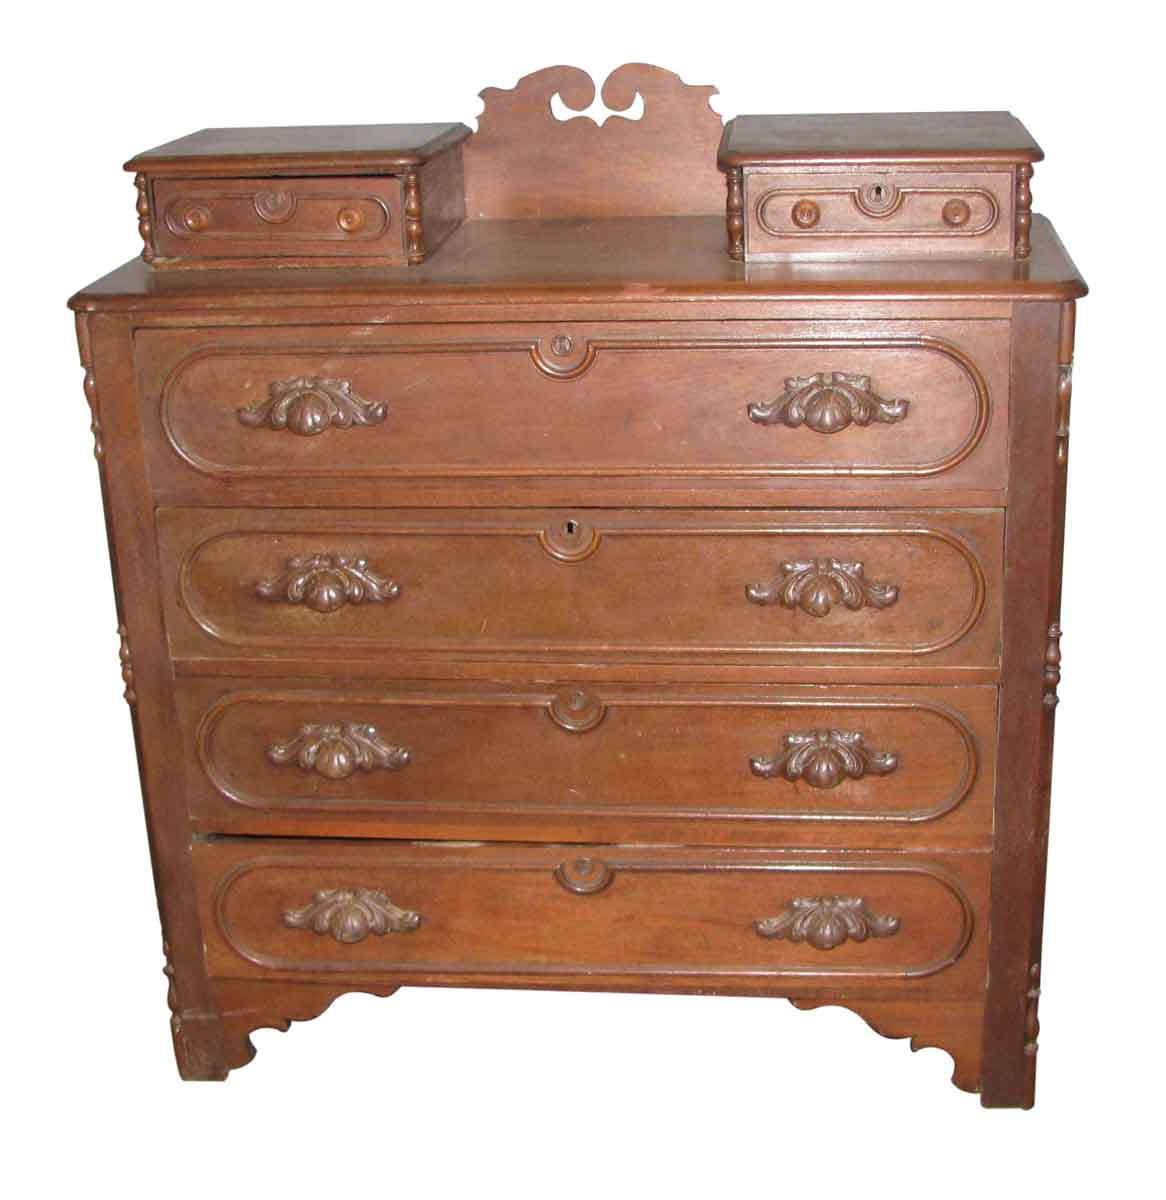 en decor dressers bedroom noble carved canada maple home mattresses depot p dresser double and chests the wood furniture gray drawer categories